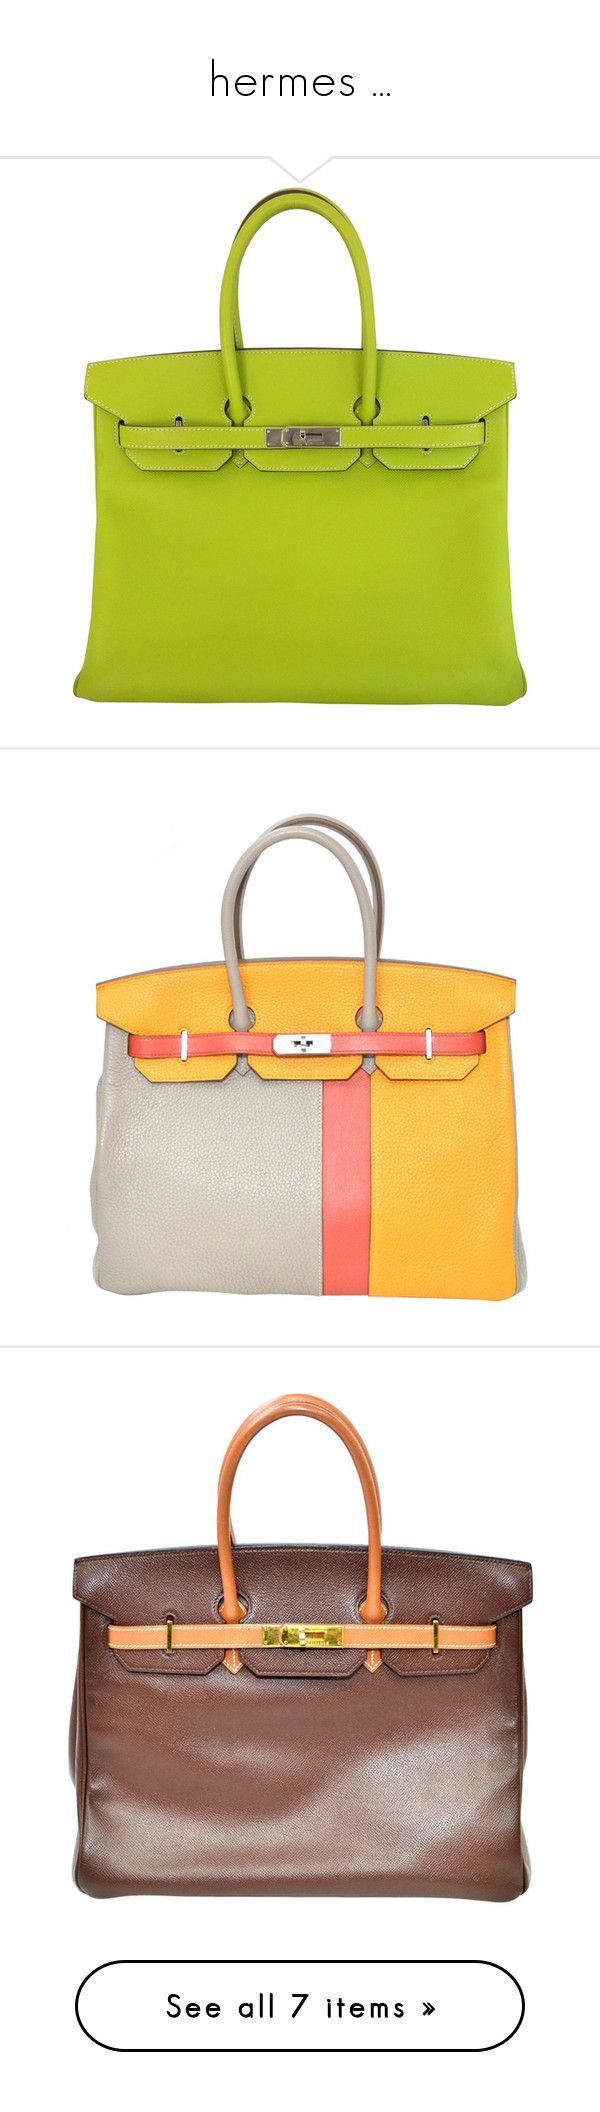 """""""hermes ..."""" by jenesaisquoilifestyle ❤ liked on Polyvore featuring bags, handbags, purses, kiwi, multi colored handbags, multi color purse, multi color handbag, colorful handbags, hermes handbags and yellow"""